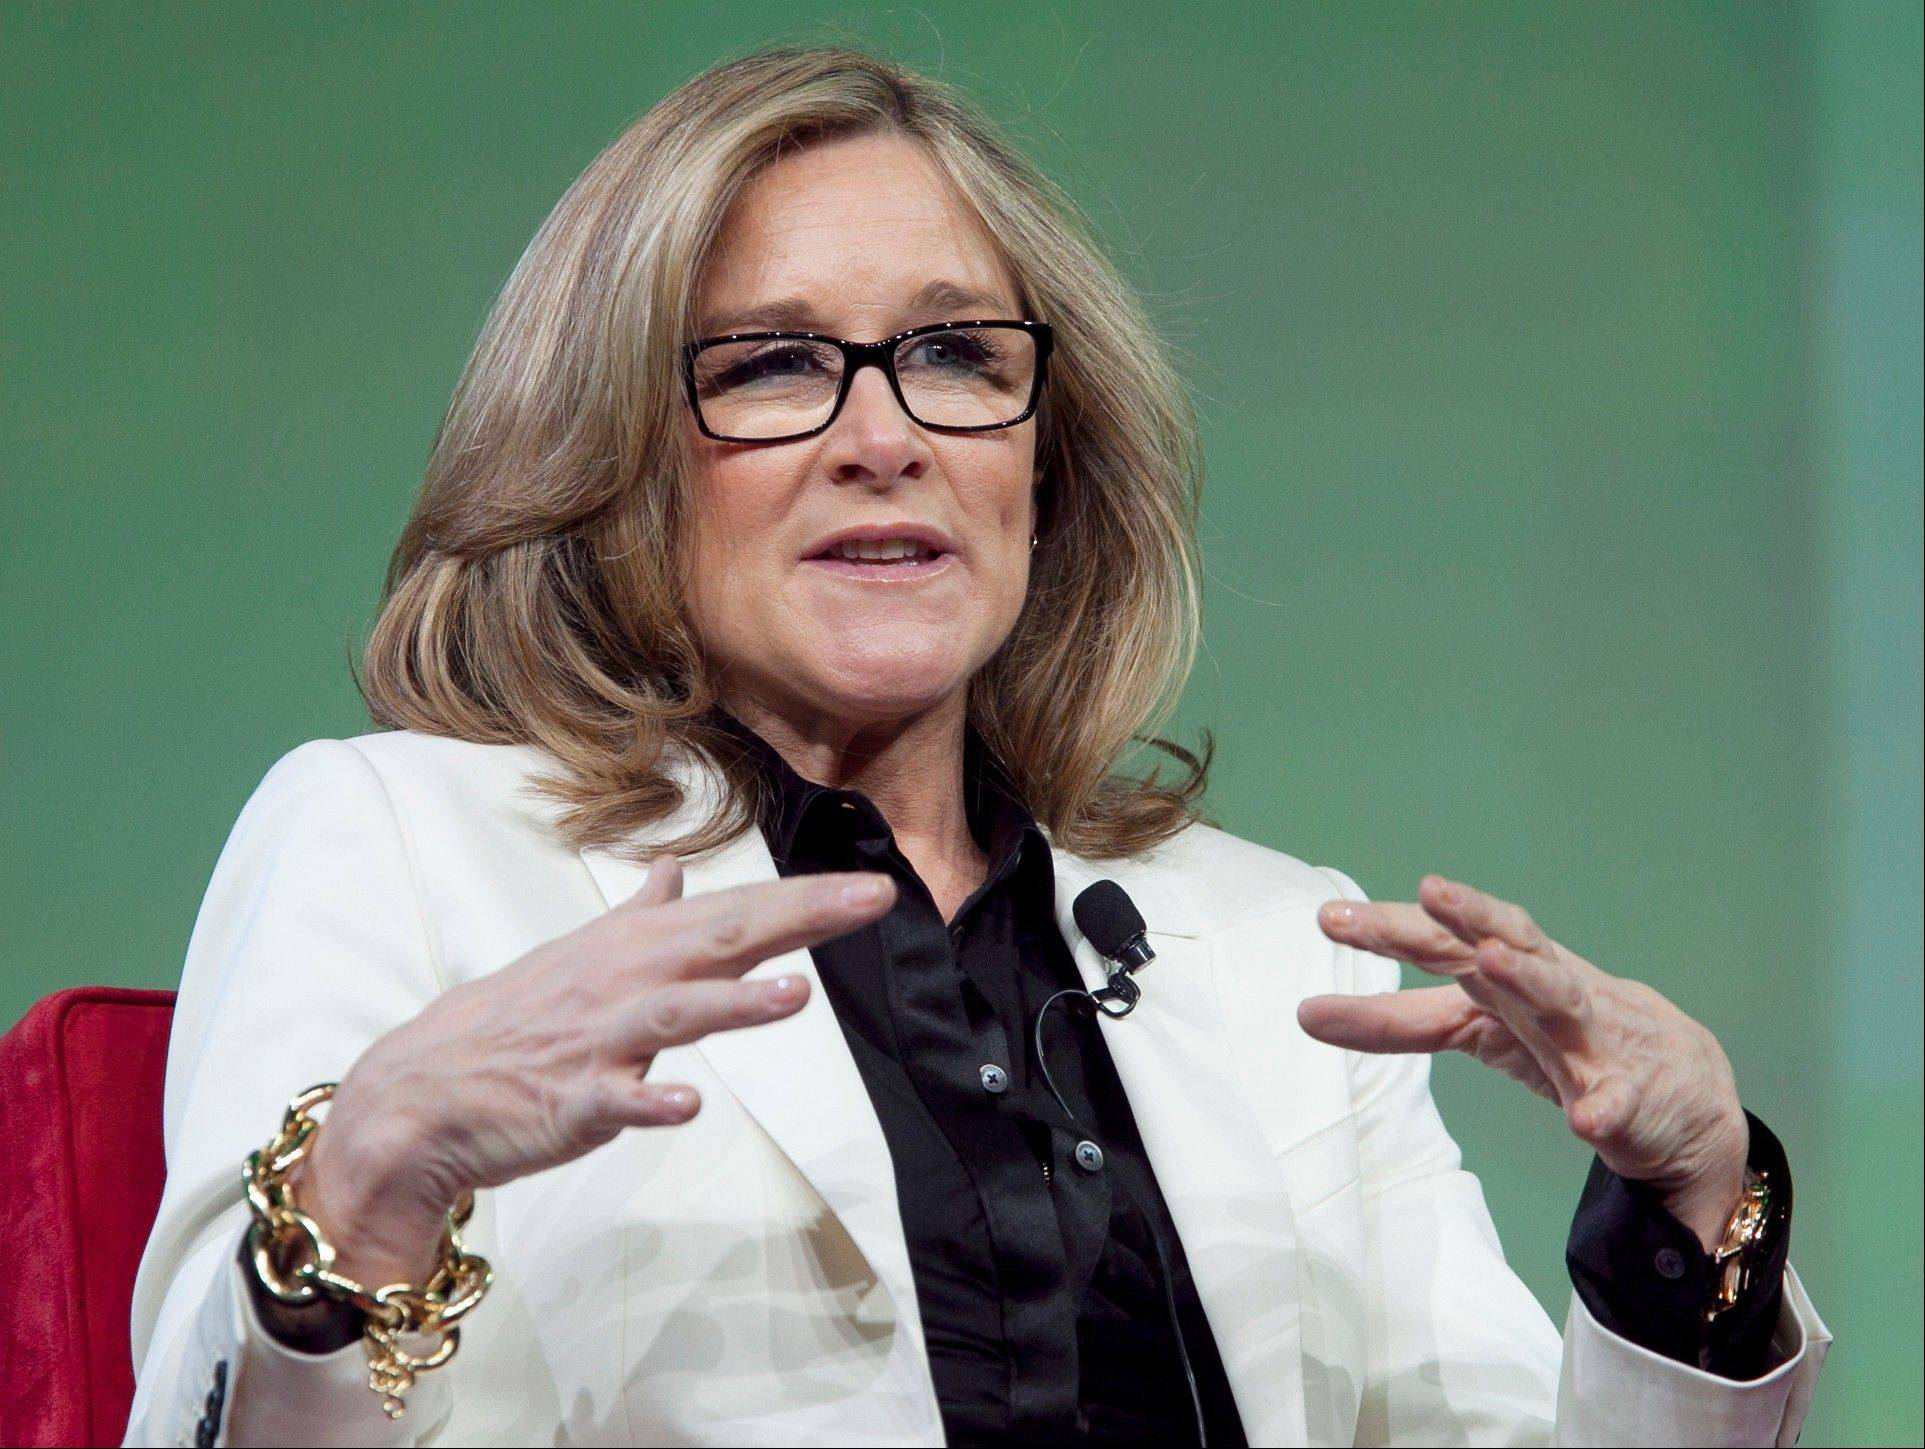 Angela Ahrendts, who used technology to drive a remarkable turnaround at Burberry, will take charge of Apple�s expansion plans and retail operation, as she will become a senior vice president at the company next spring.